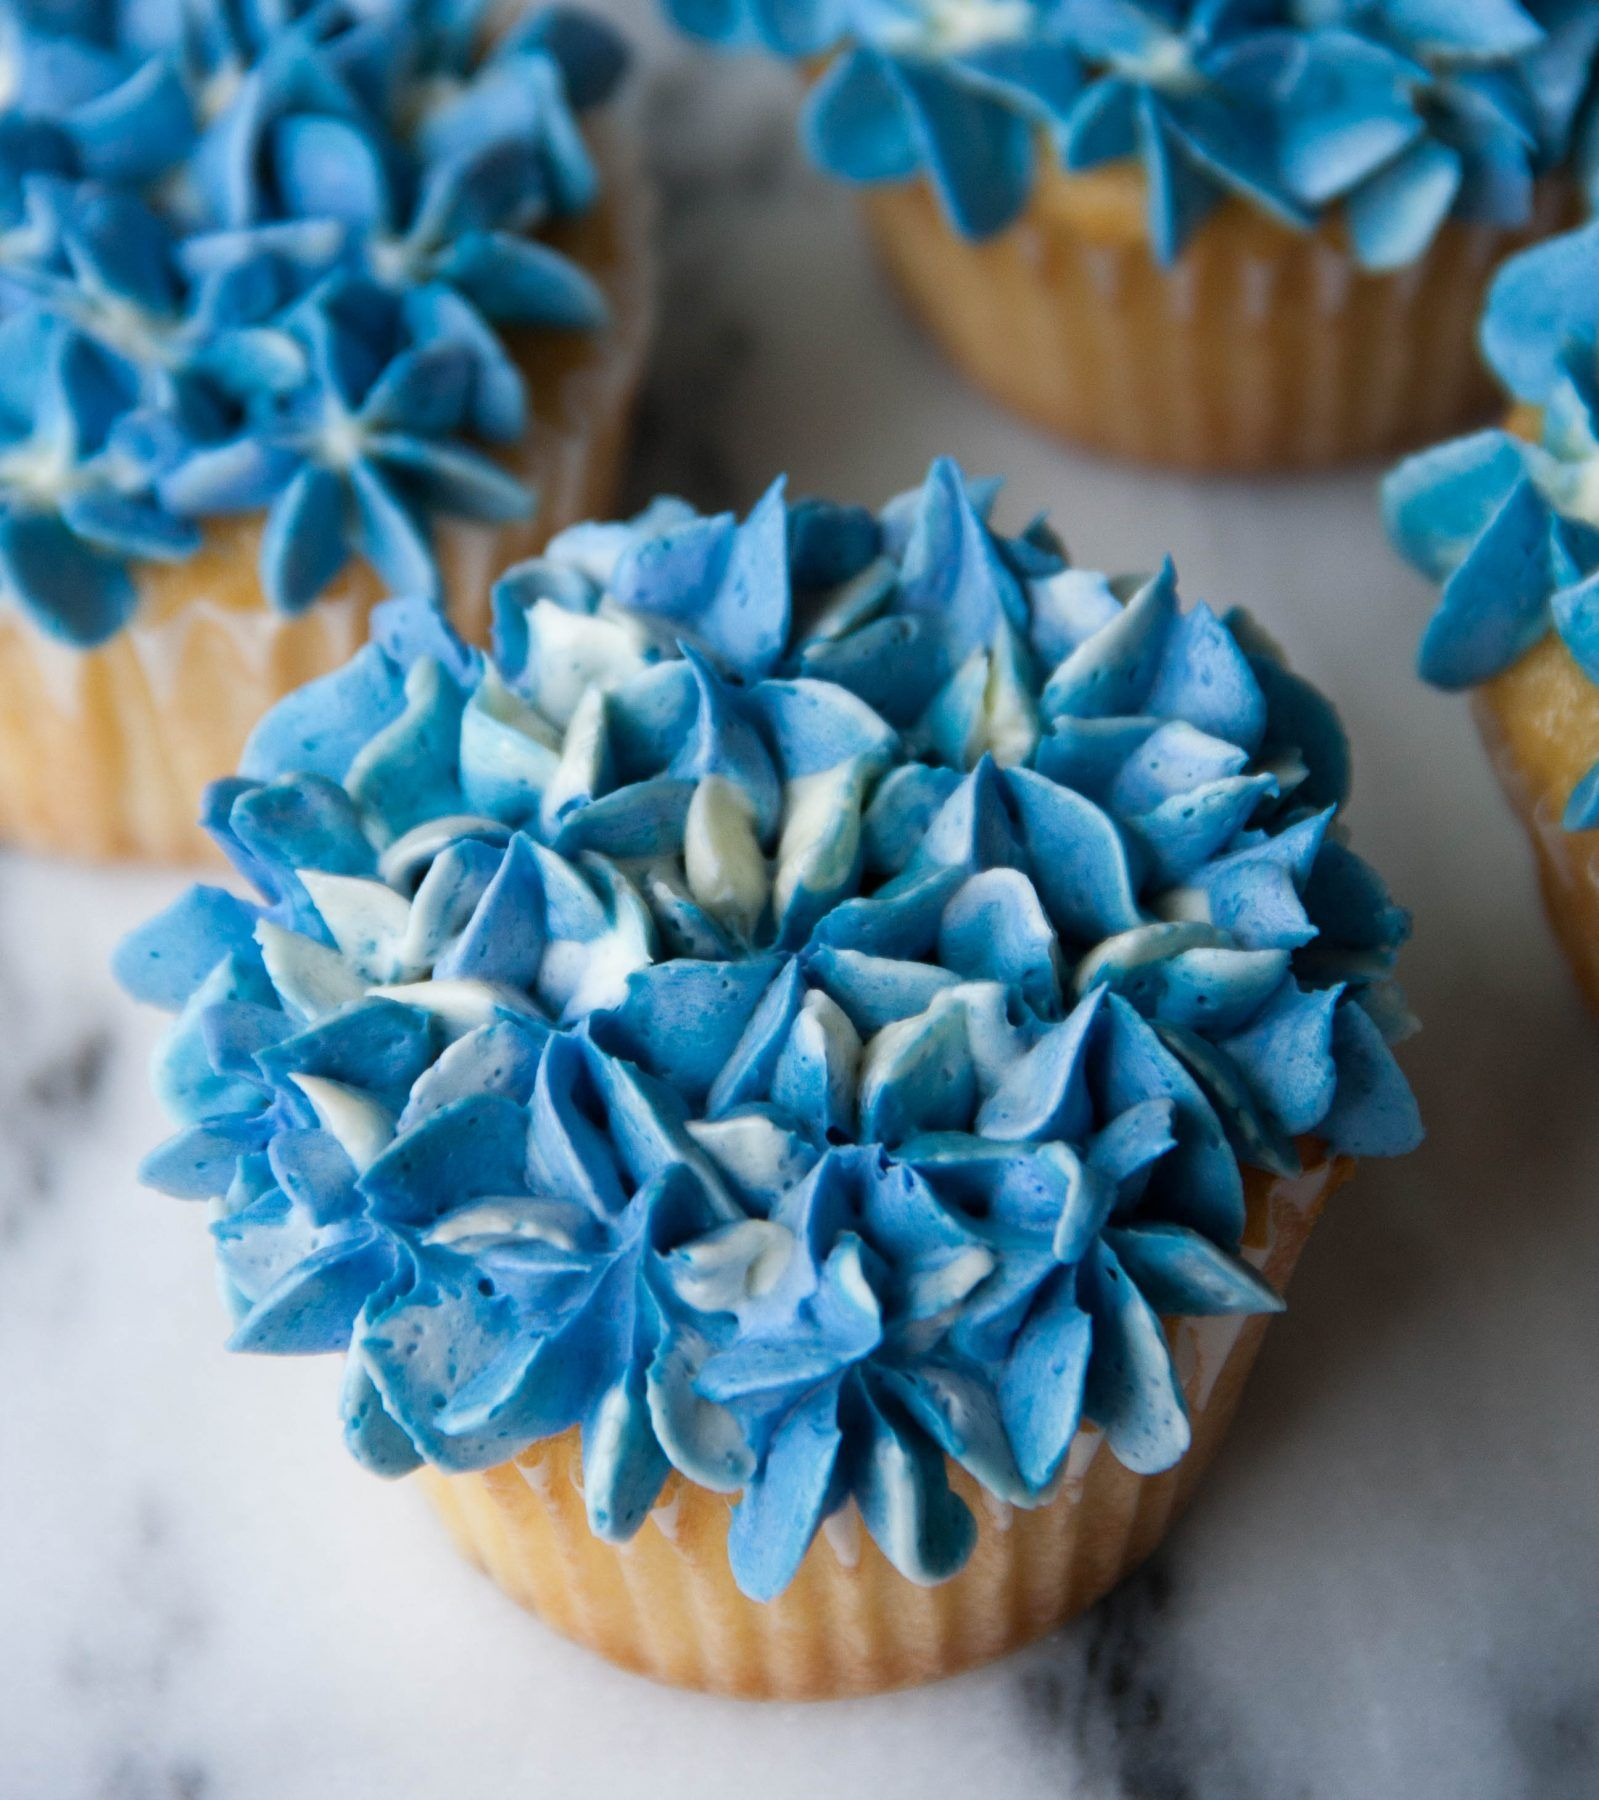 Hydrangea cupcakes video learn how to make hydrangea cupcakes in hydrangea cupcakes video learn how to make hydrangea cupcakes in this tutorial these beautiful flower izmirmasajfo